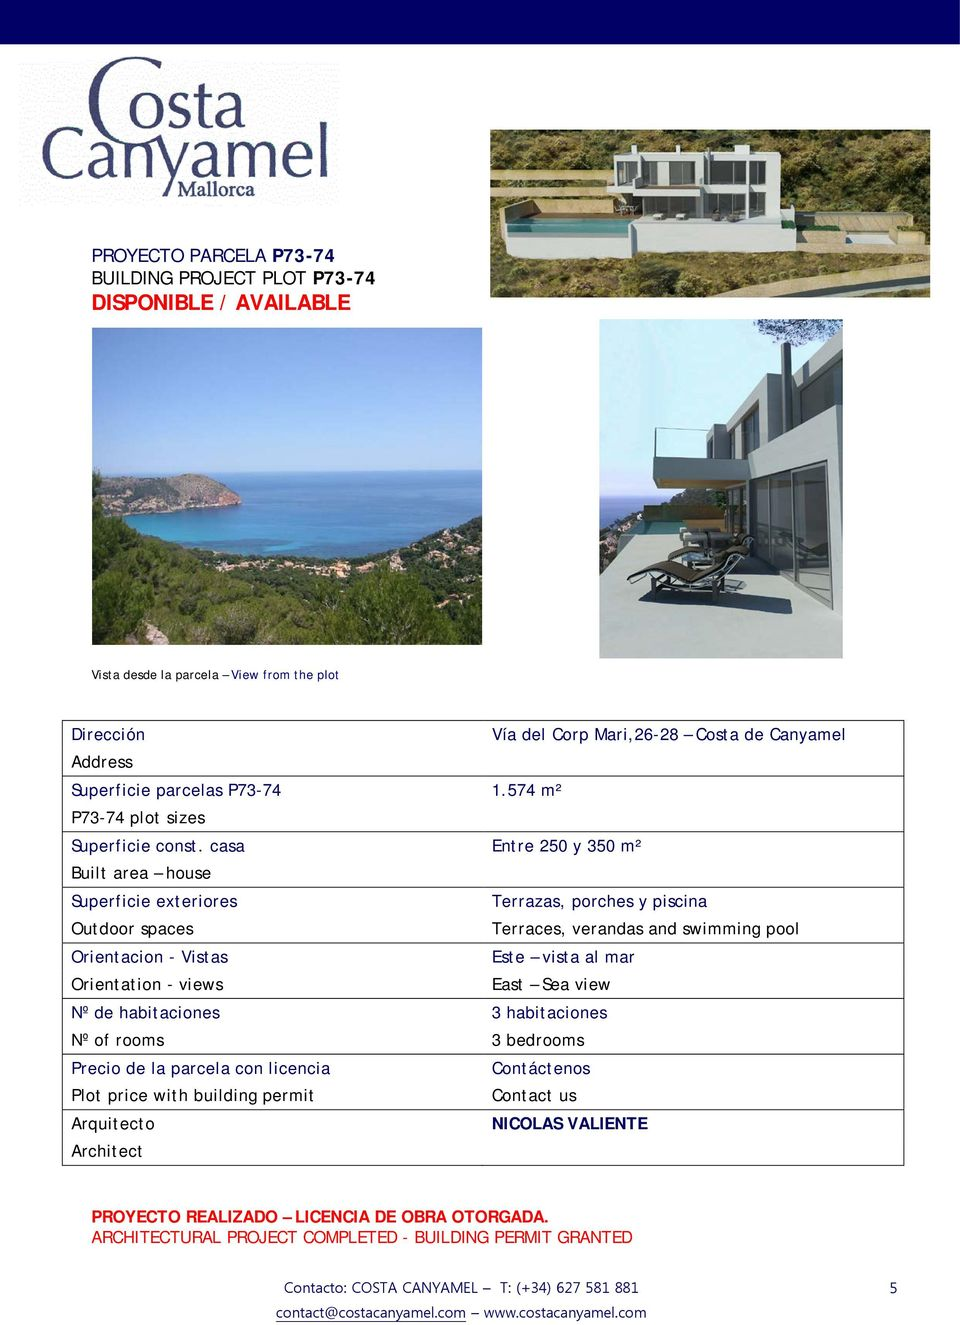 casa Entre 250 y 350 m² Built area house Nº de habitaciones 3 habitaciones Nº of rooms 3 bedrooms Arquitecto